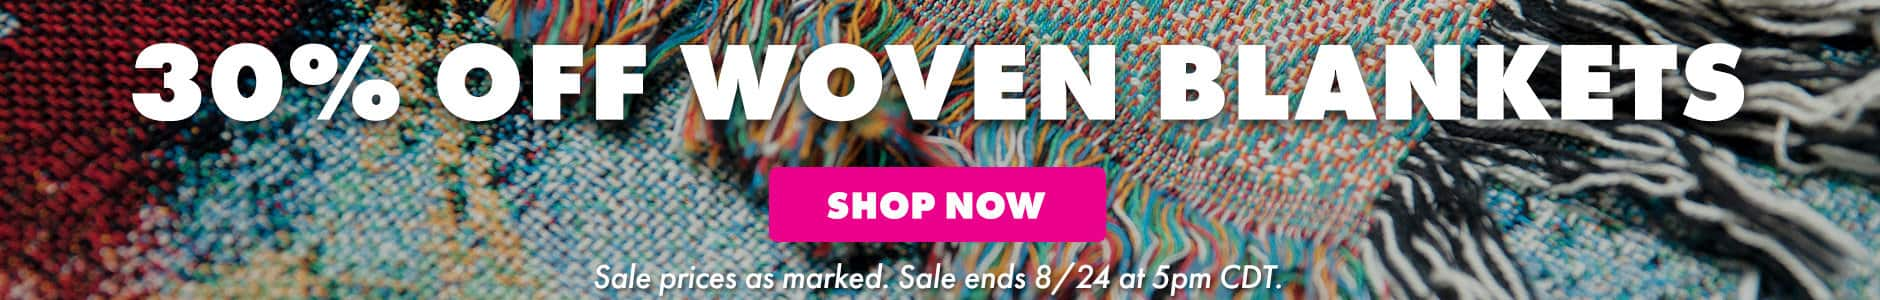 30% off New Woven Blankets!